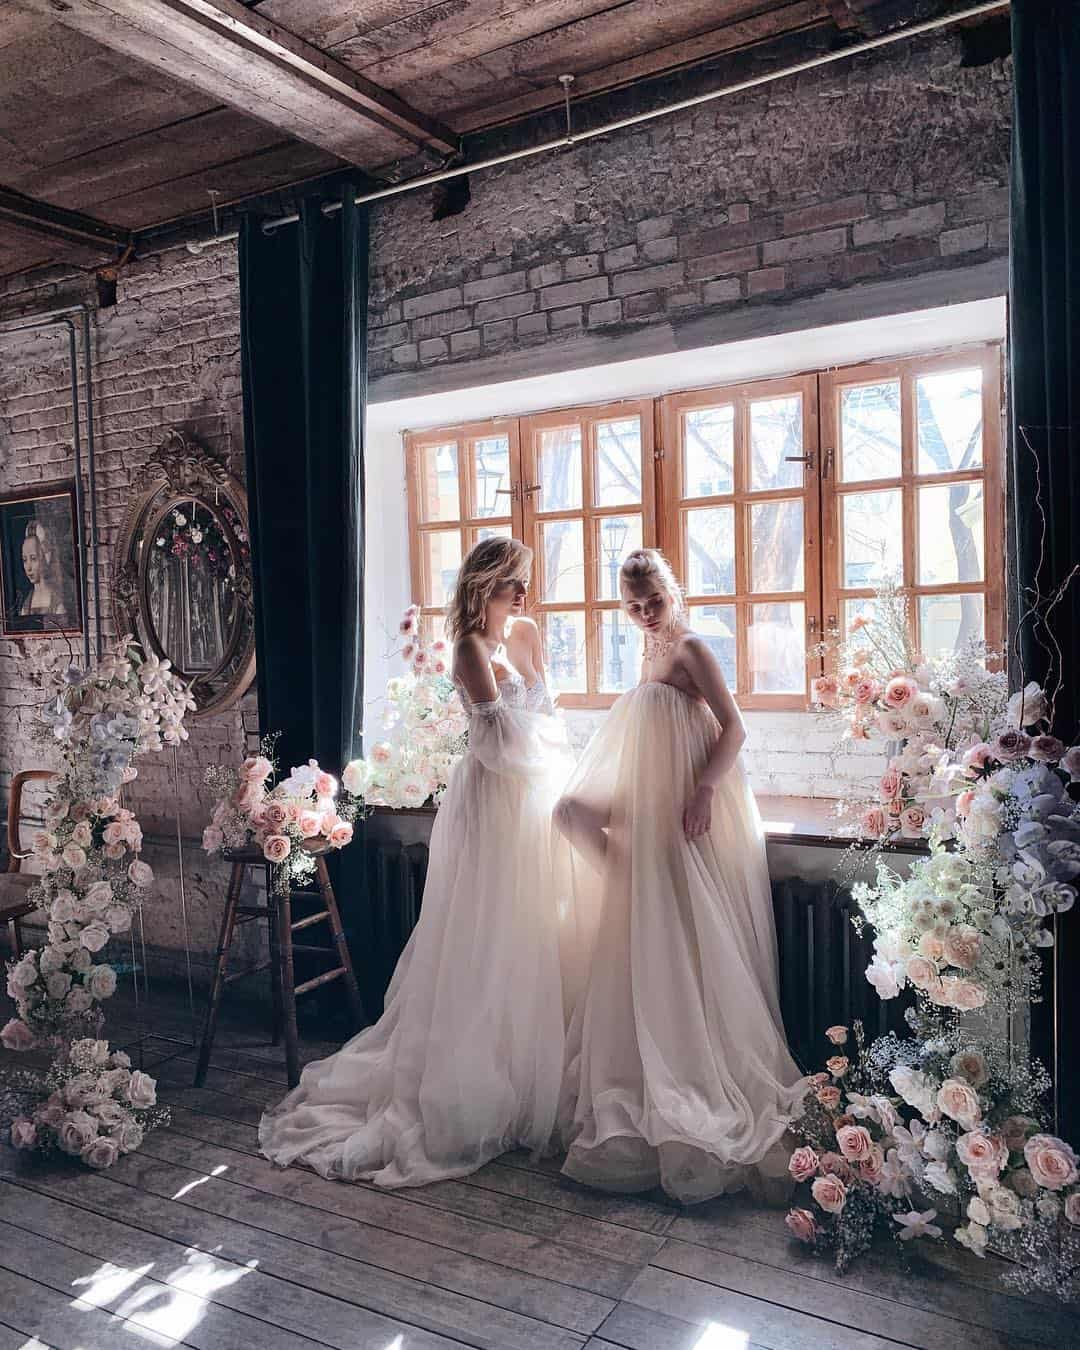 Unique and Delicate Bridal Dress Collection by Katerina Klimkina